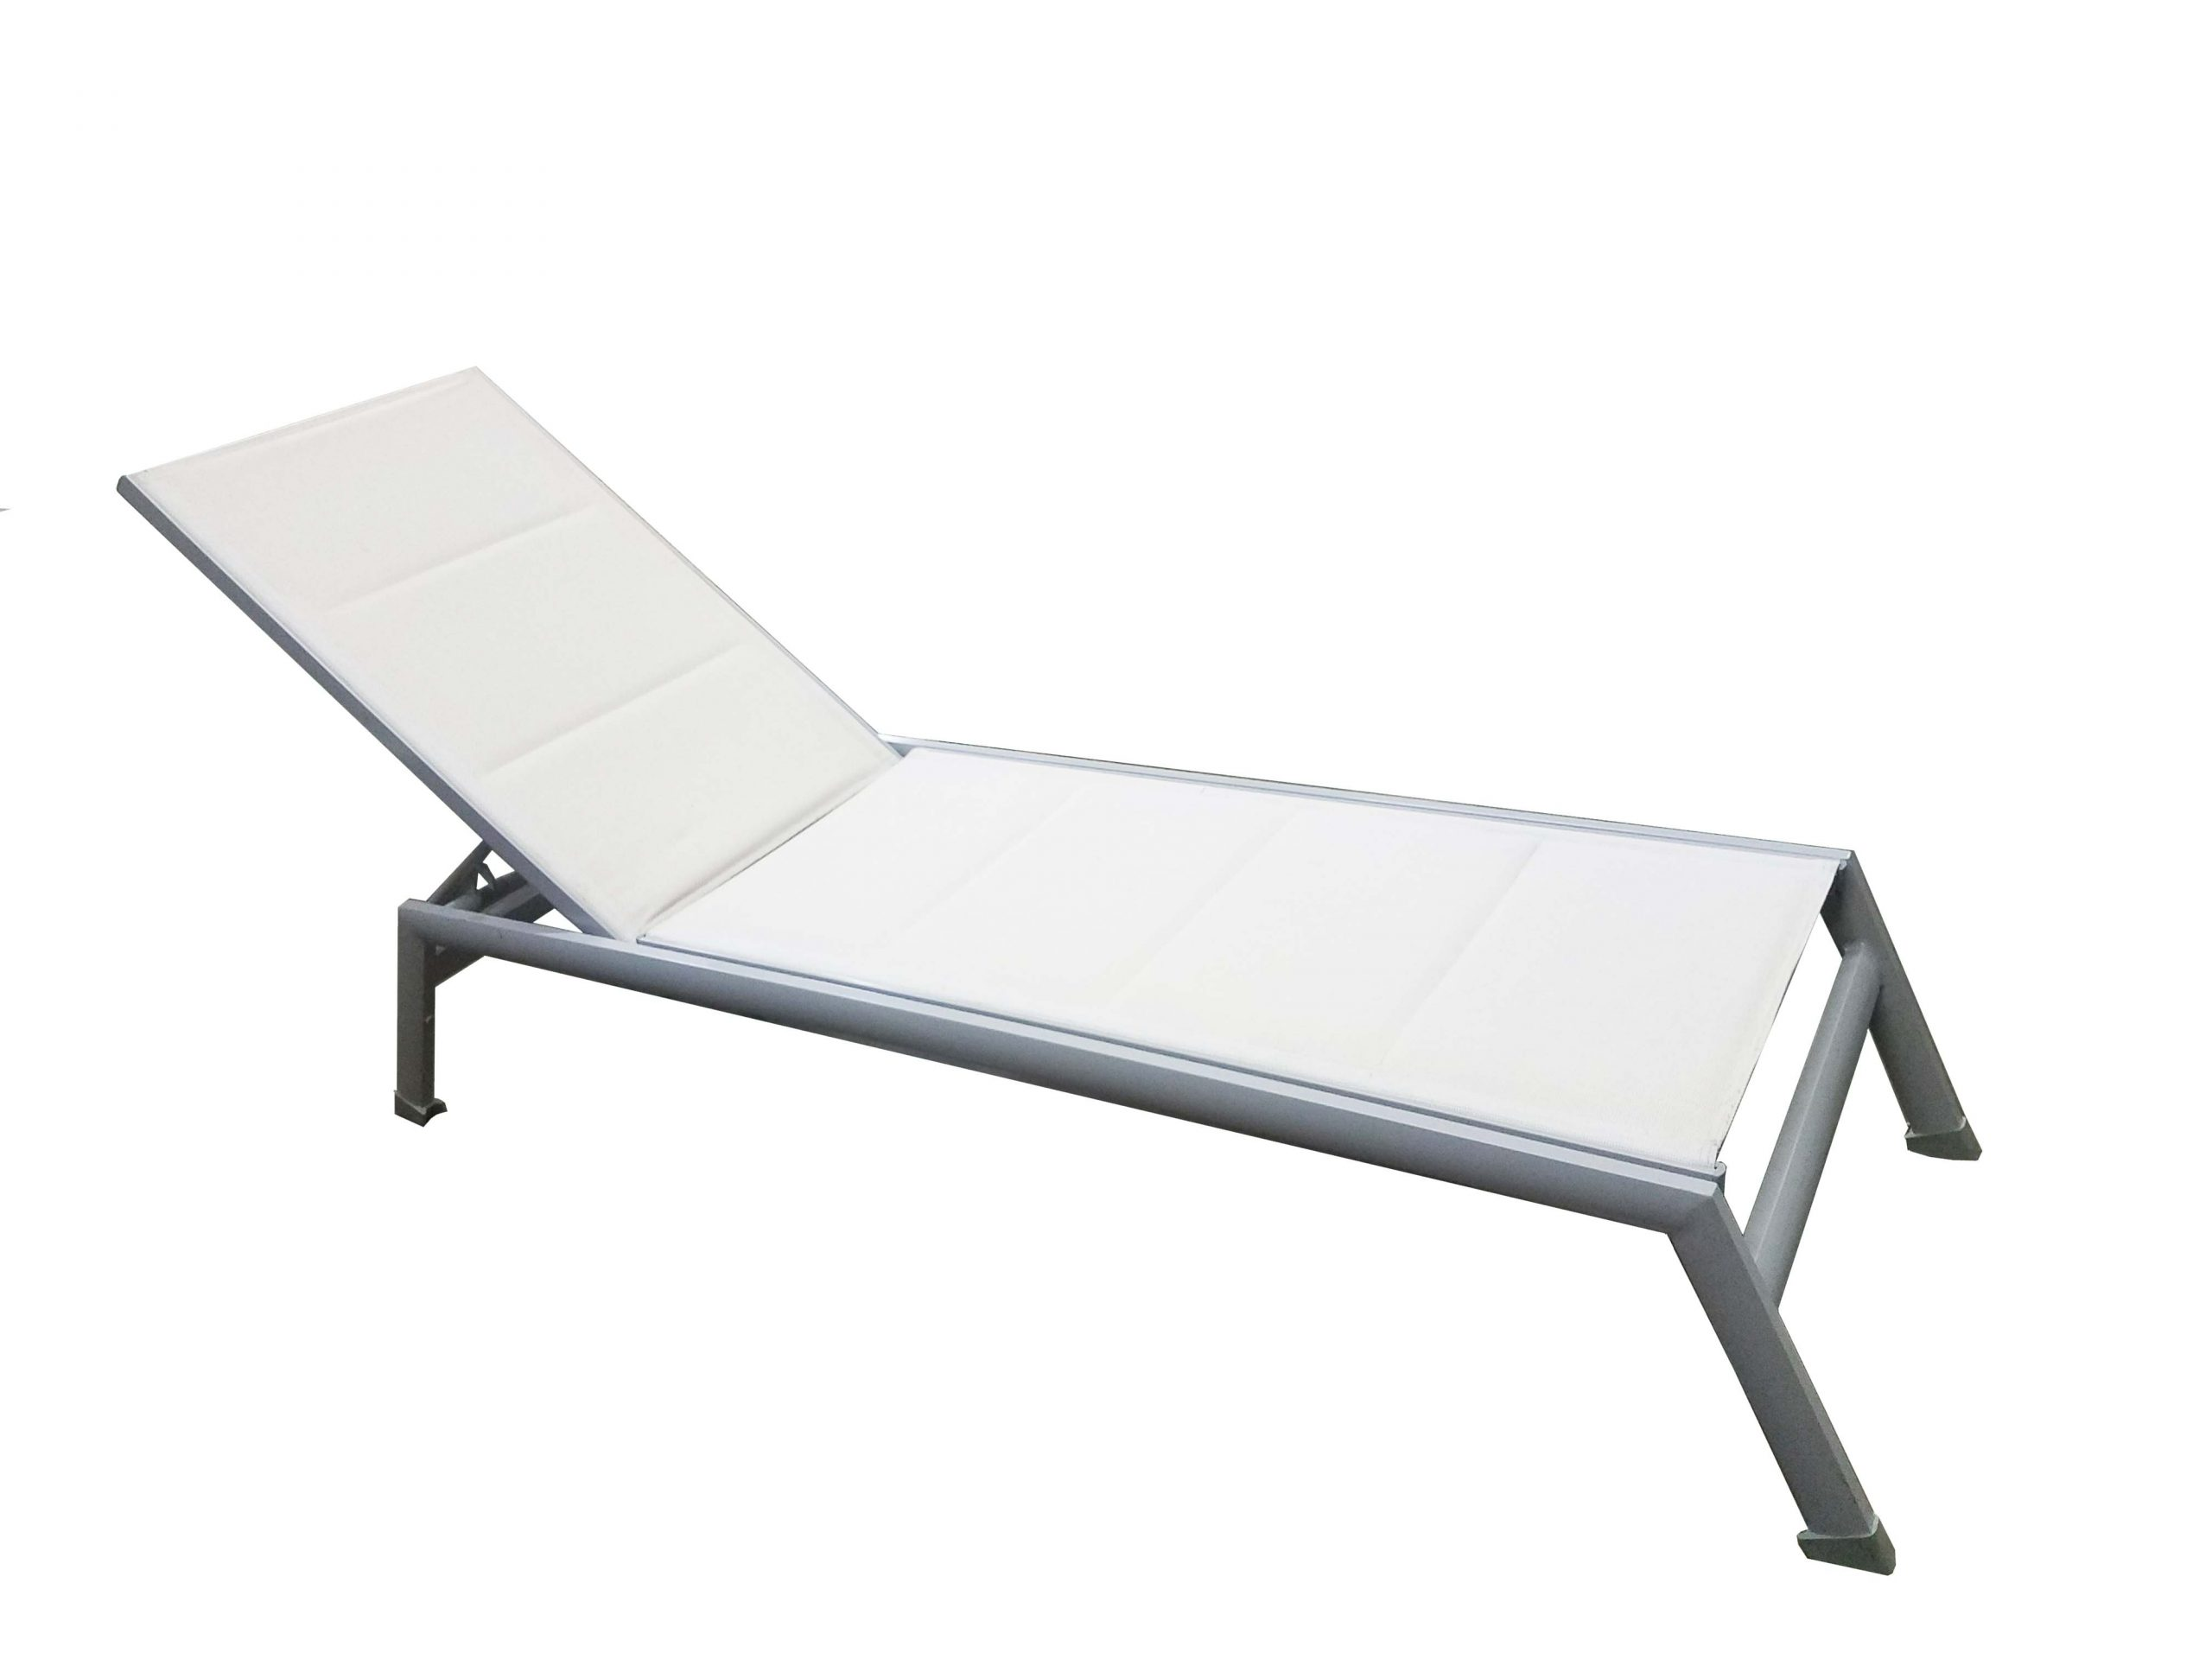 PALM SPRINGS CHAISE LOUNGER - White